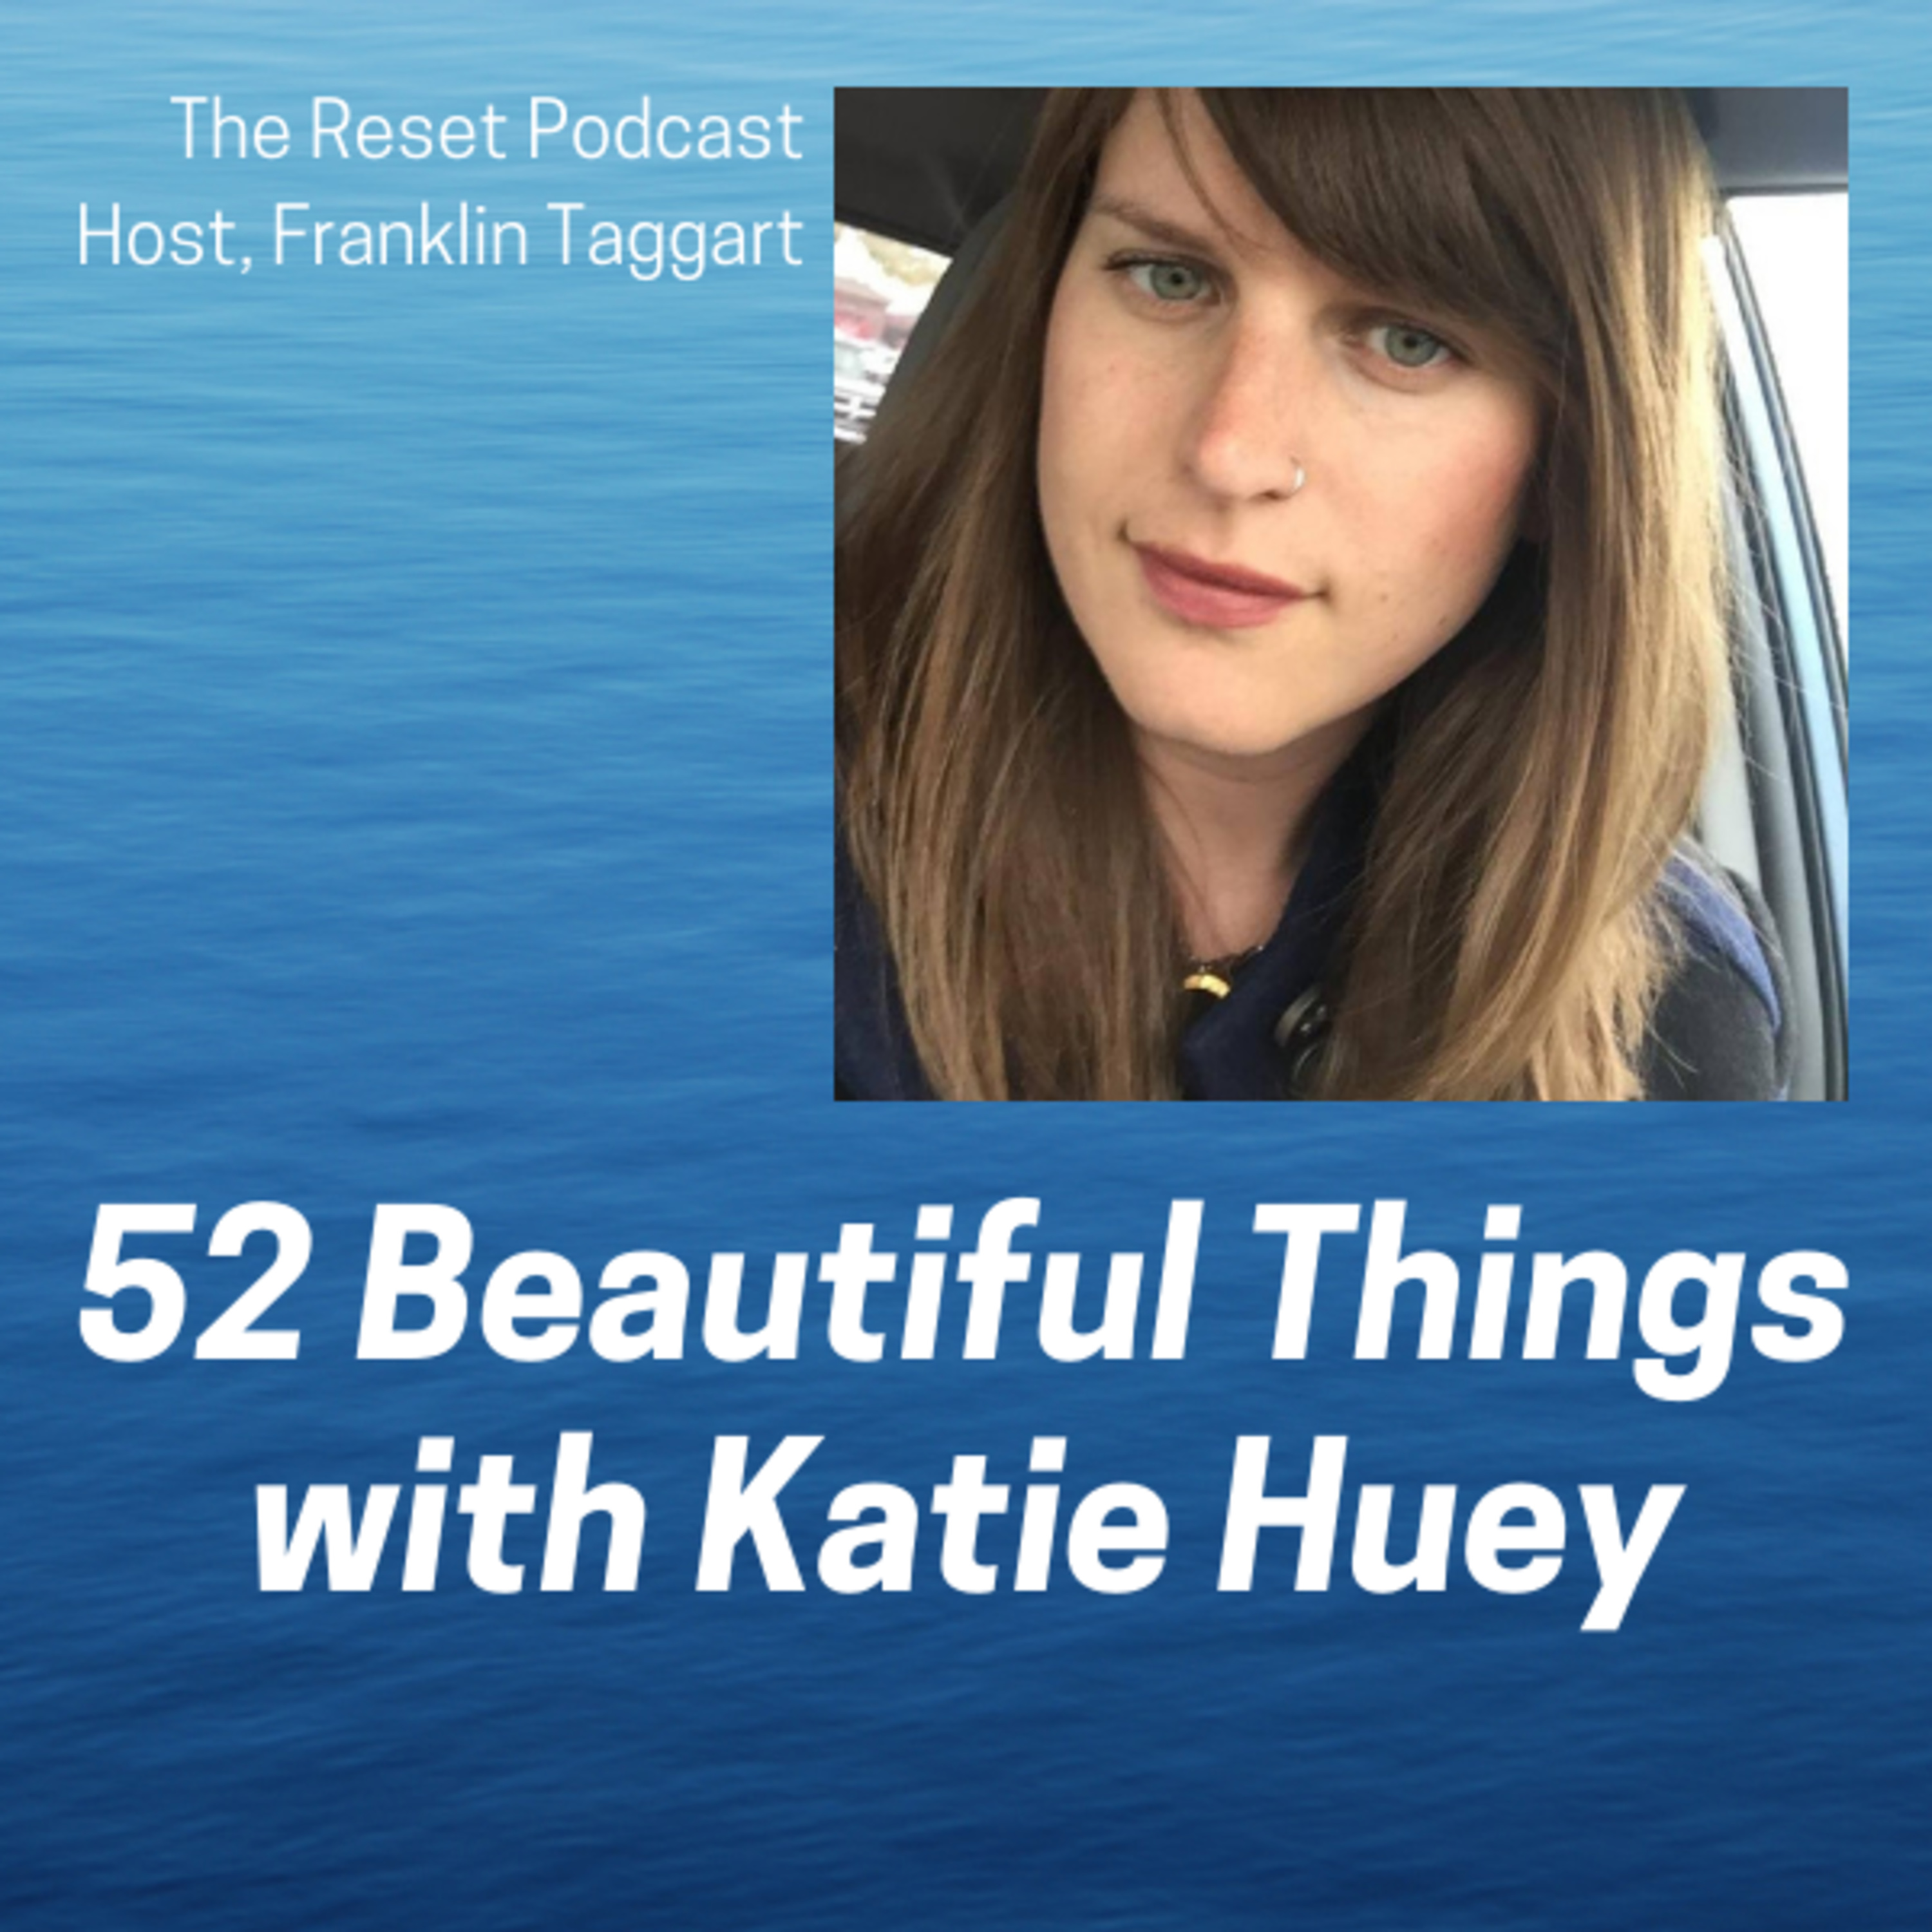 52 Beautiful Things with Katie Huey